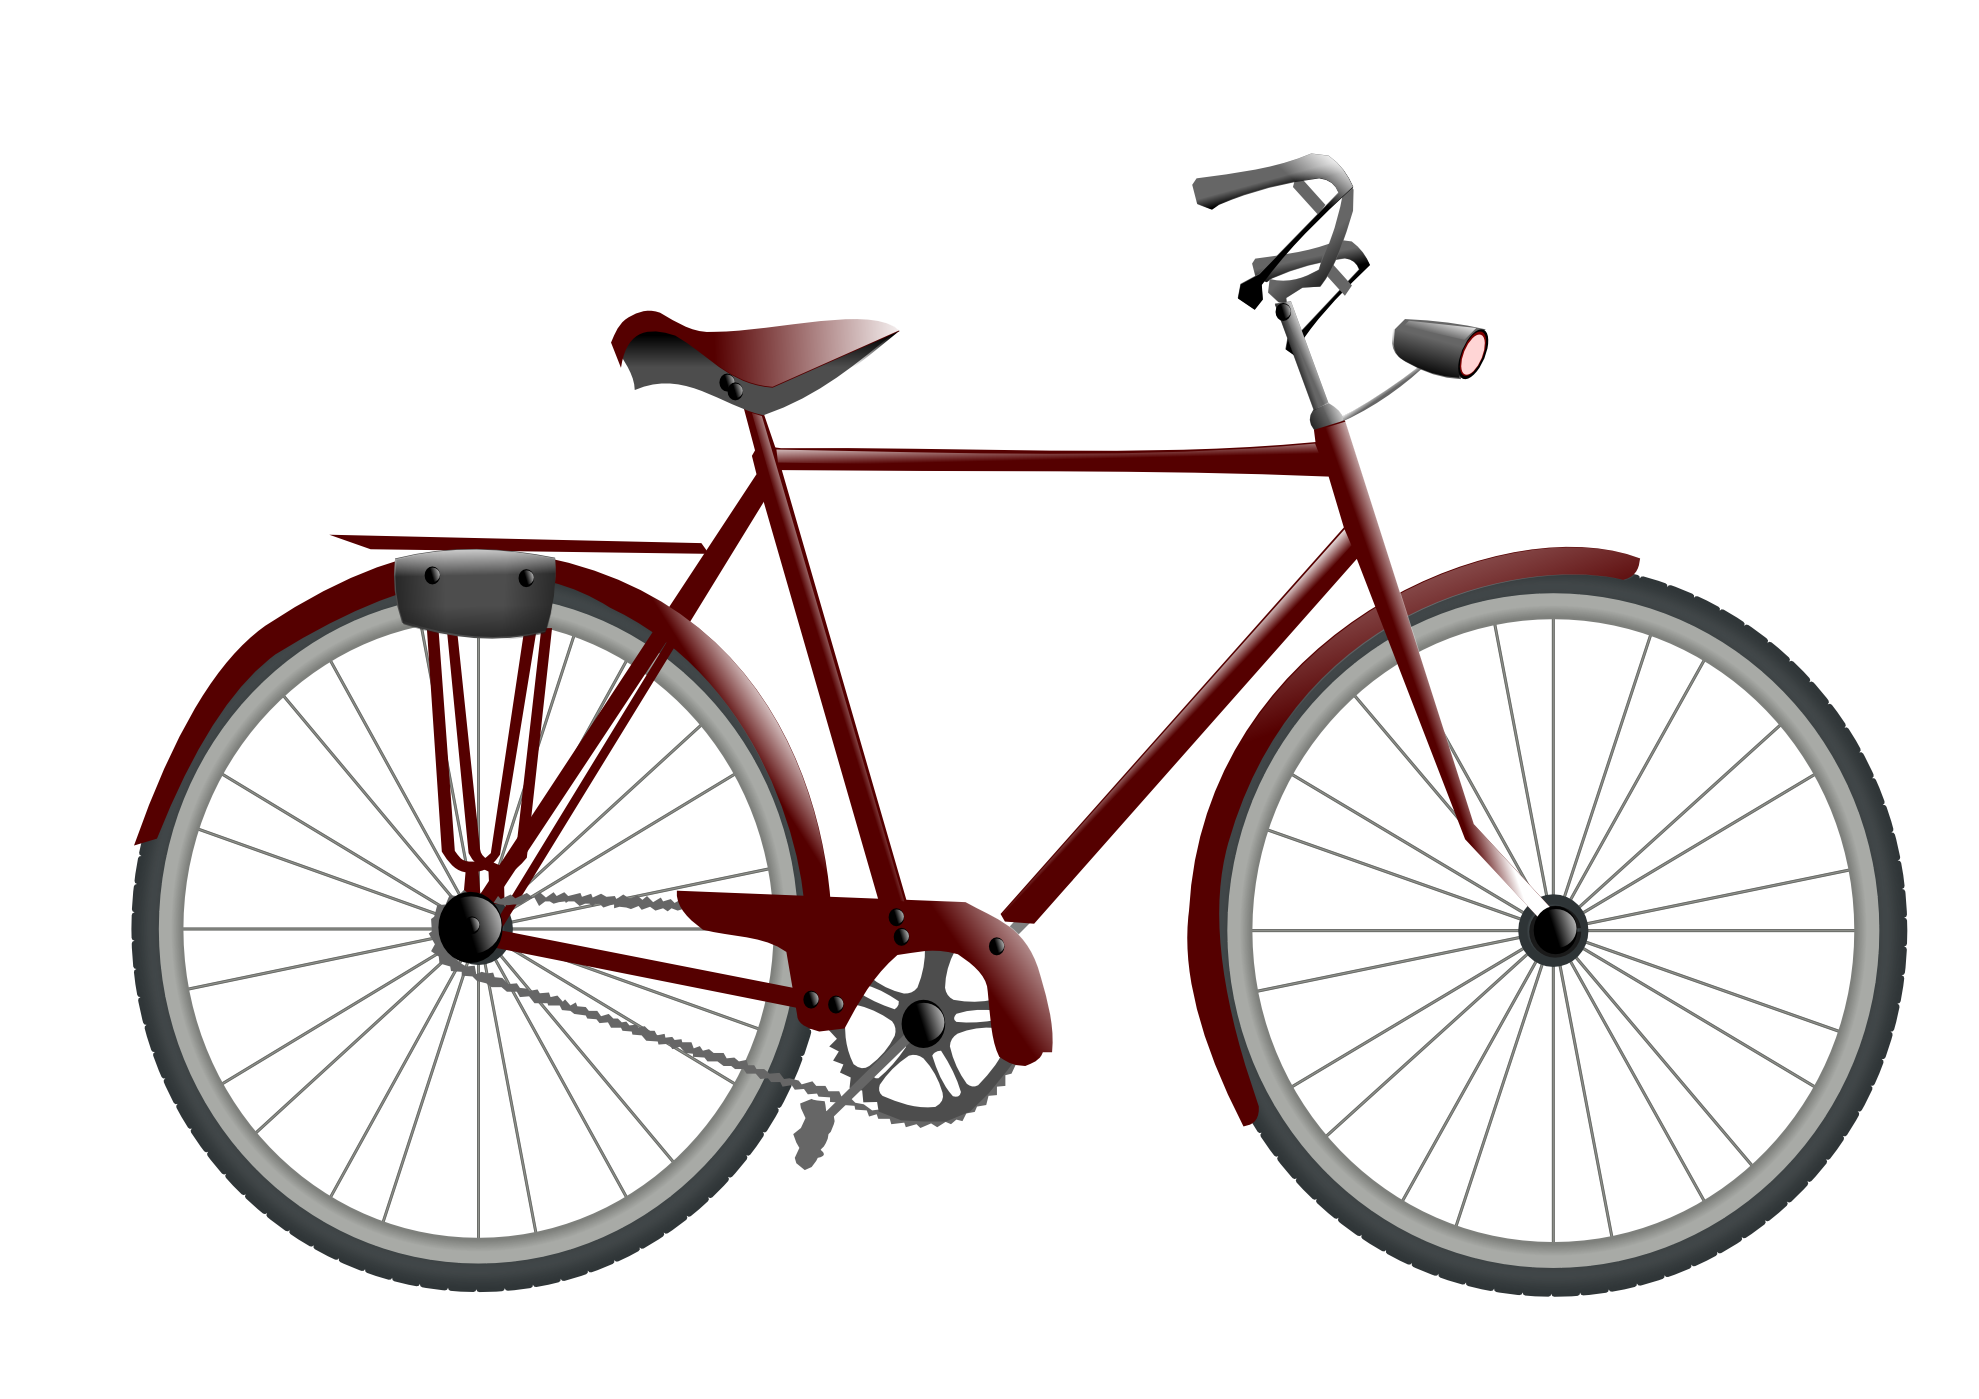 vector freeuse library Image result for bicycle. Biking clipart wedding.